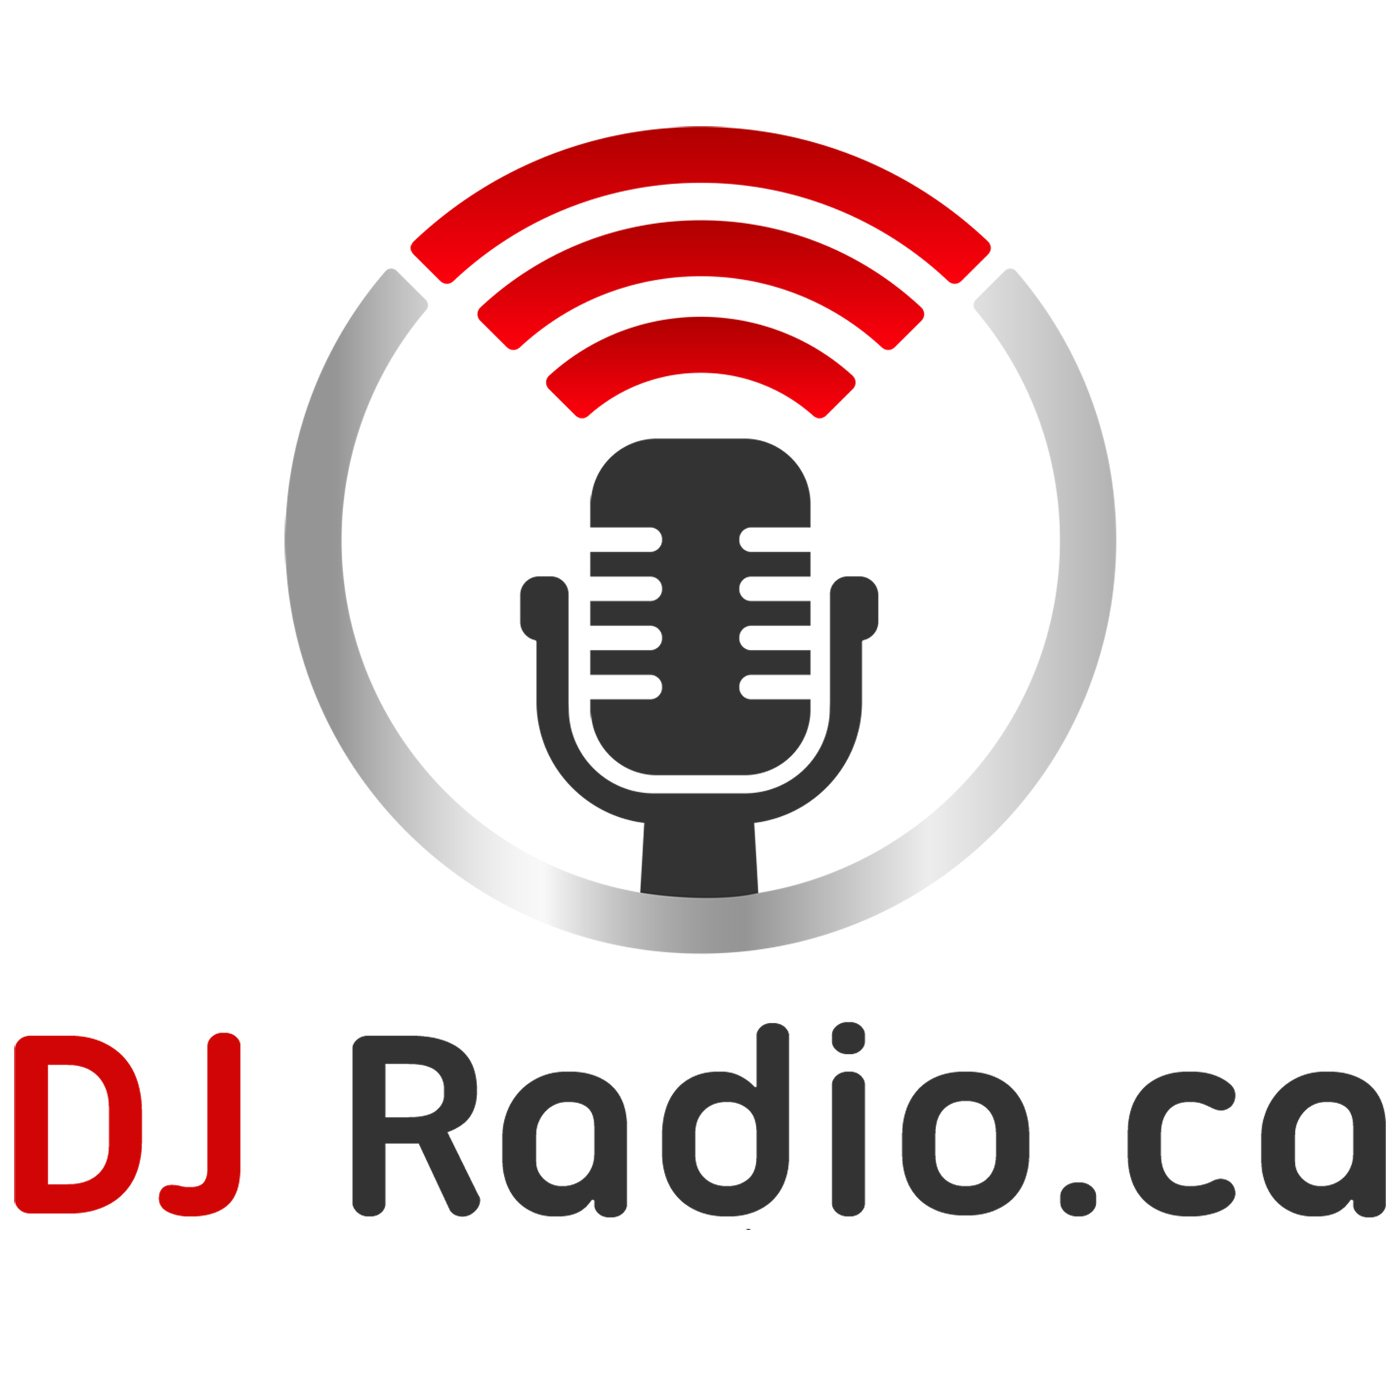 https://0901.nccdn.net/4_2/000/000/038/2d3/dj-radio-apple.jpg